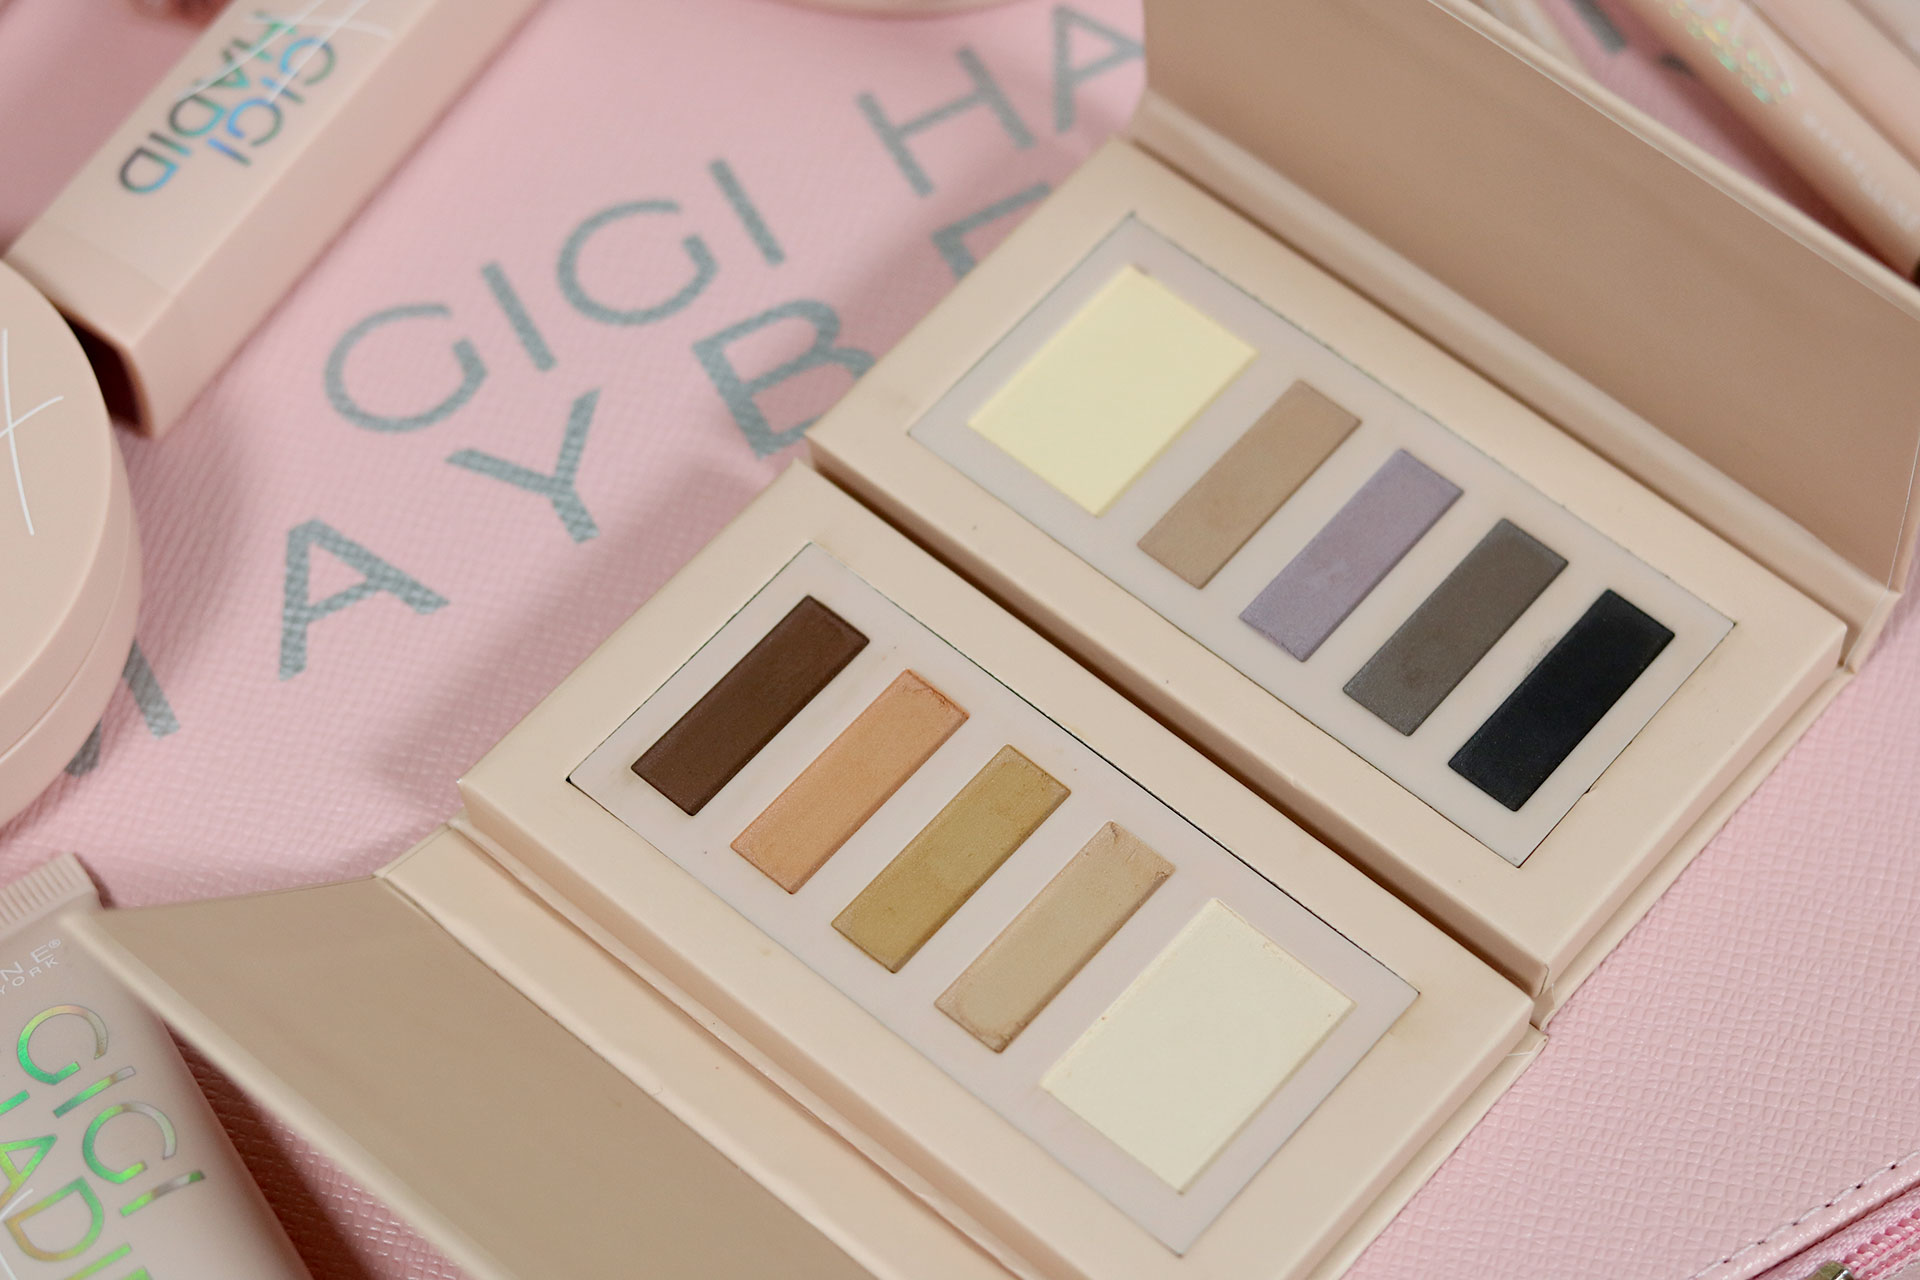 26 Gigi Hadid Maybelline Collection Review Swatches Photos - Gen-zel She Sings Beauty